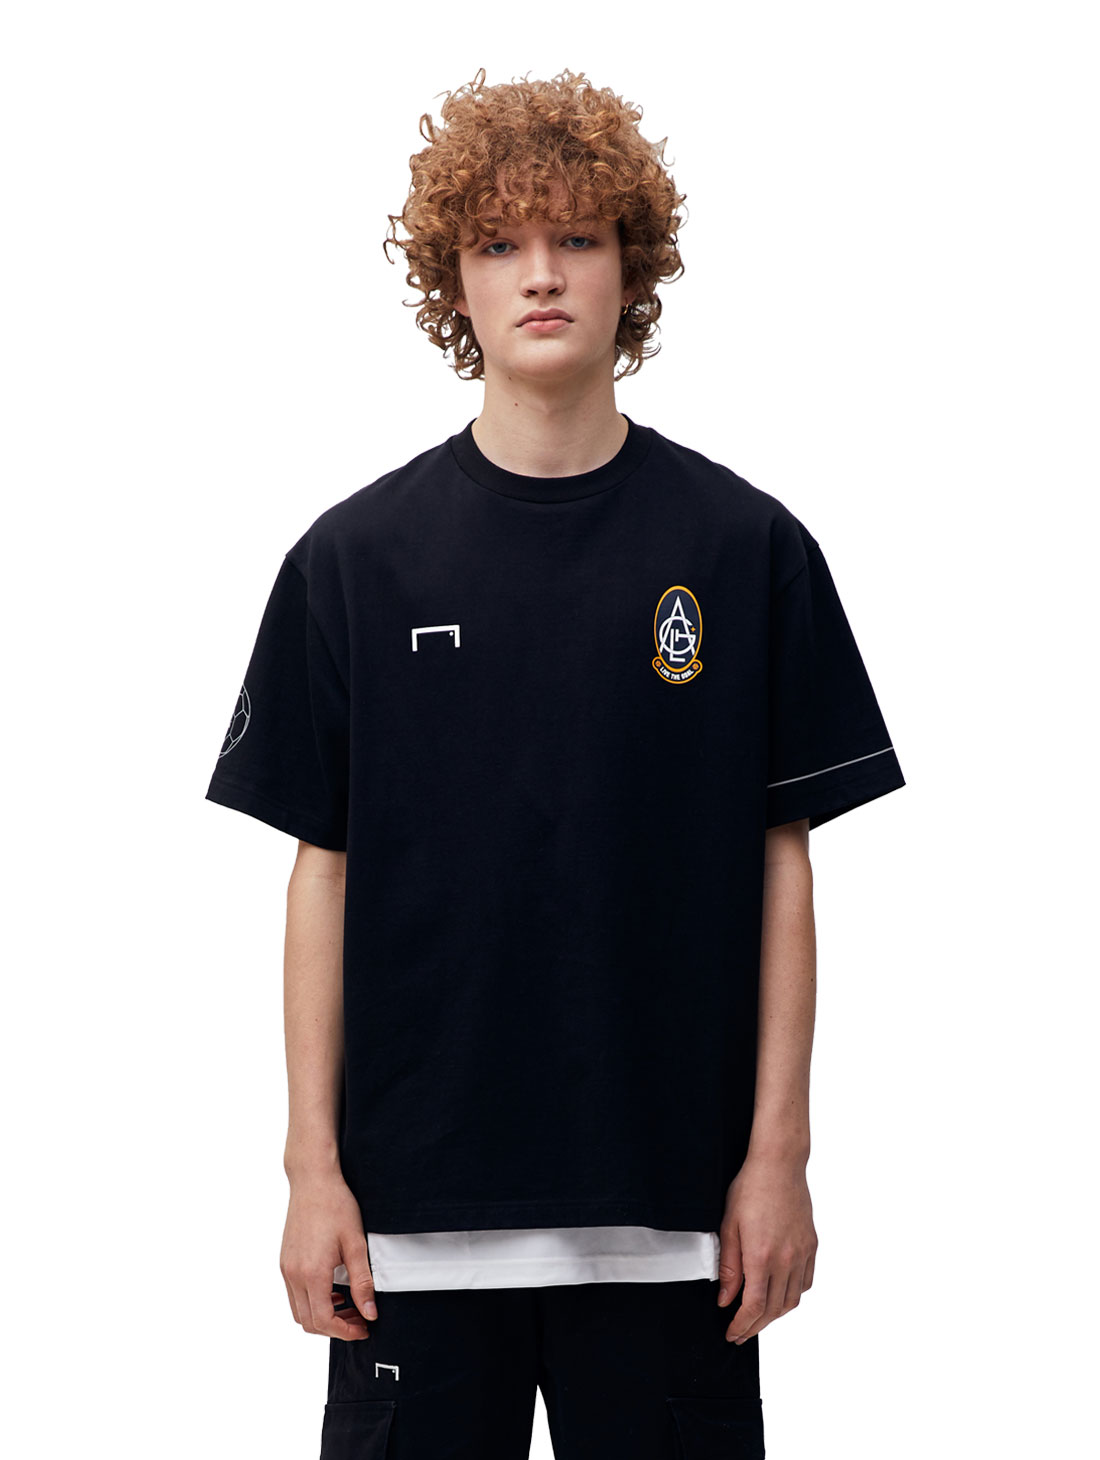 GOALSTUDIO EMBLEM TEE - BLACK